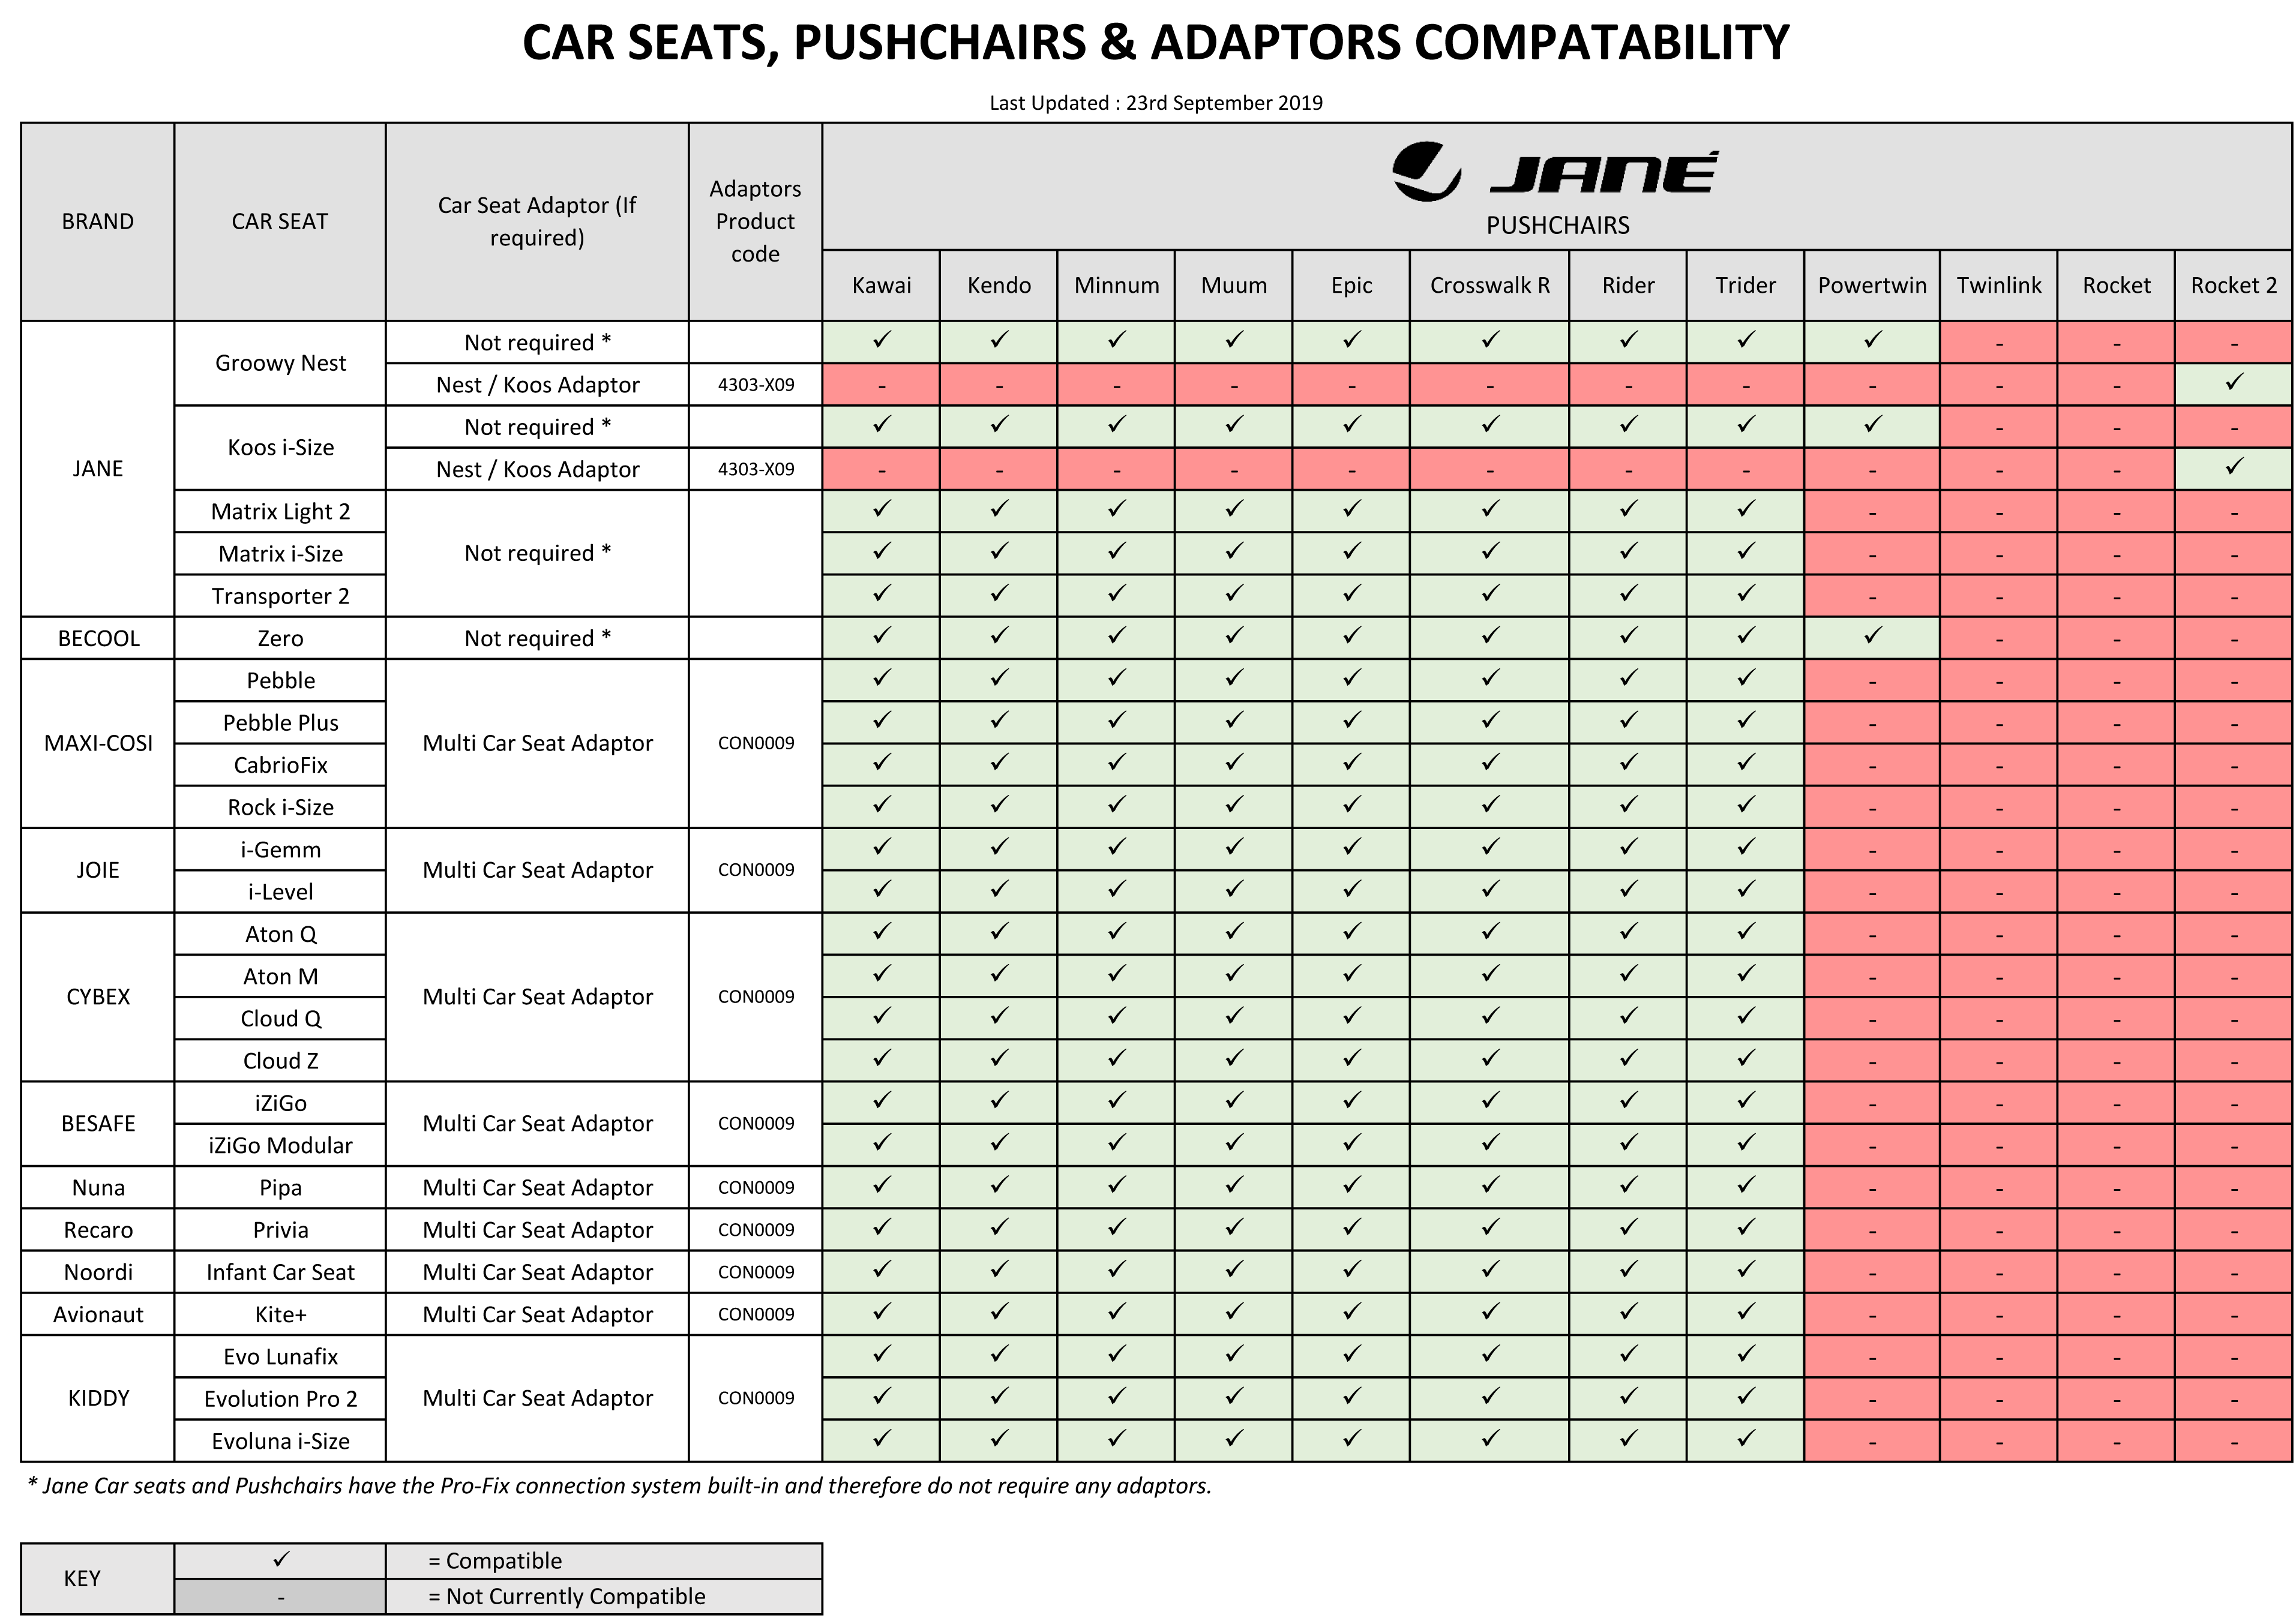 Car Seat Compatibility chart